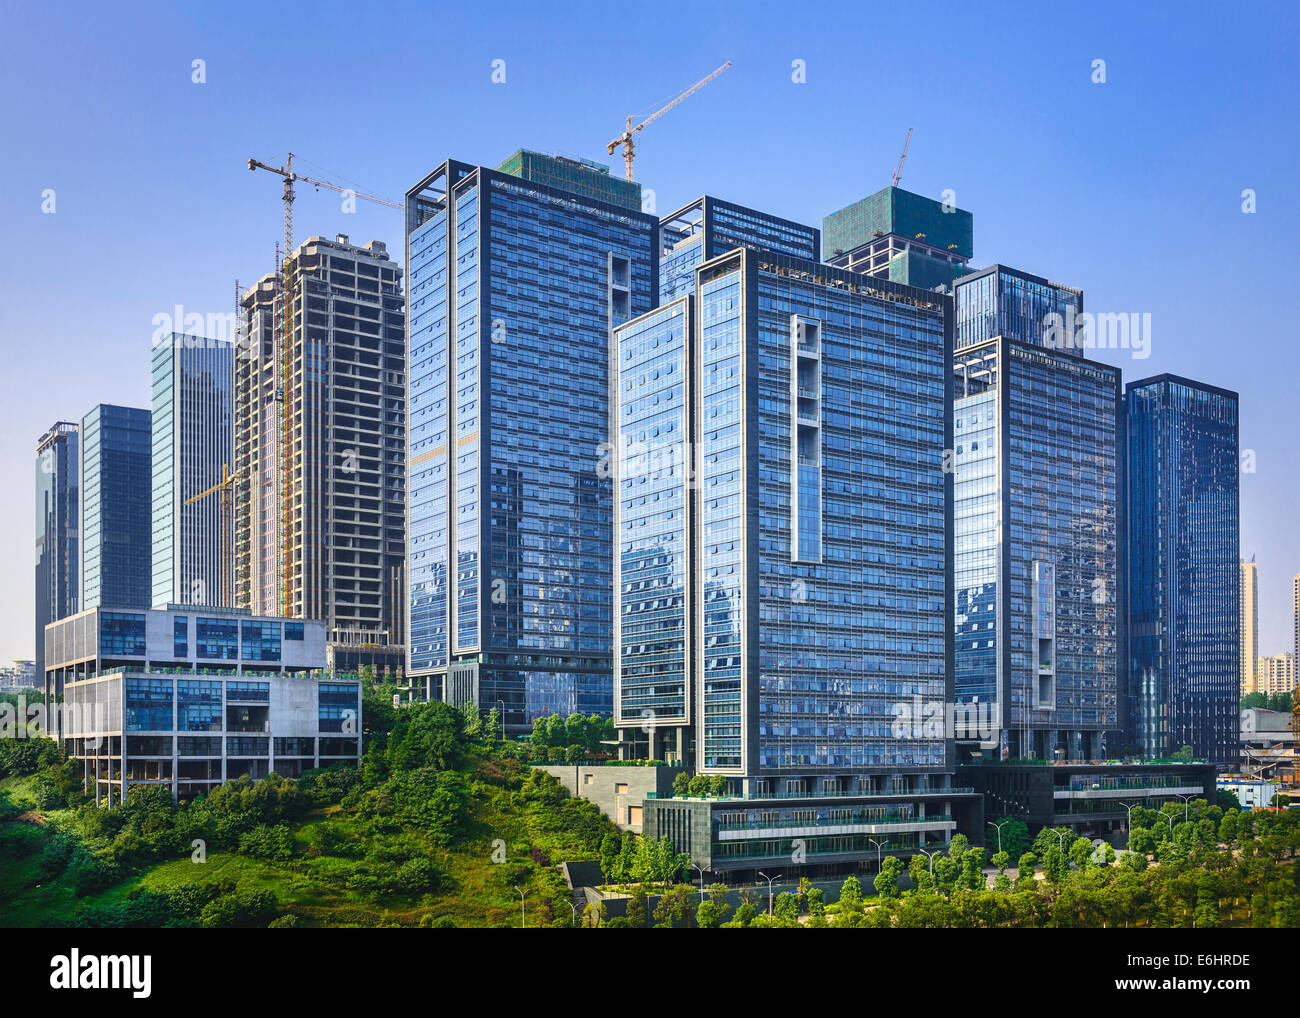 Modern office buildings newly built in Chongqing, China. - Stock Image